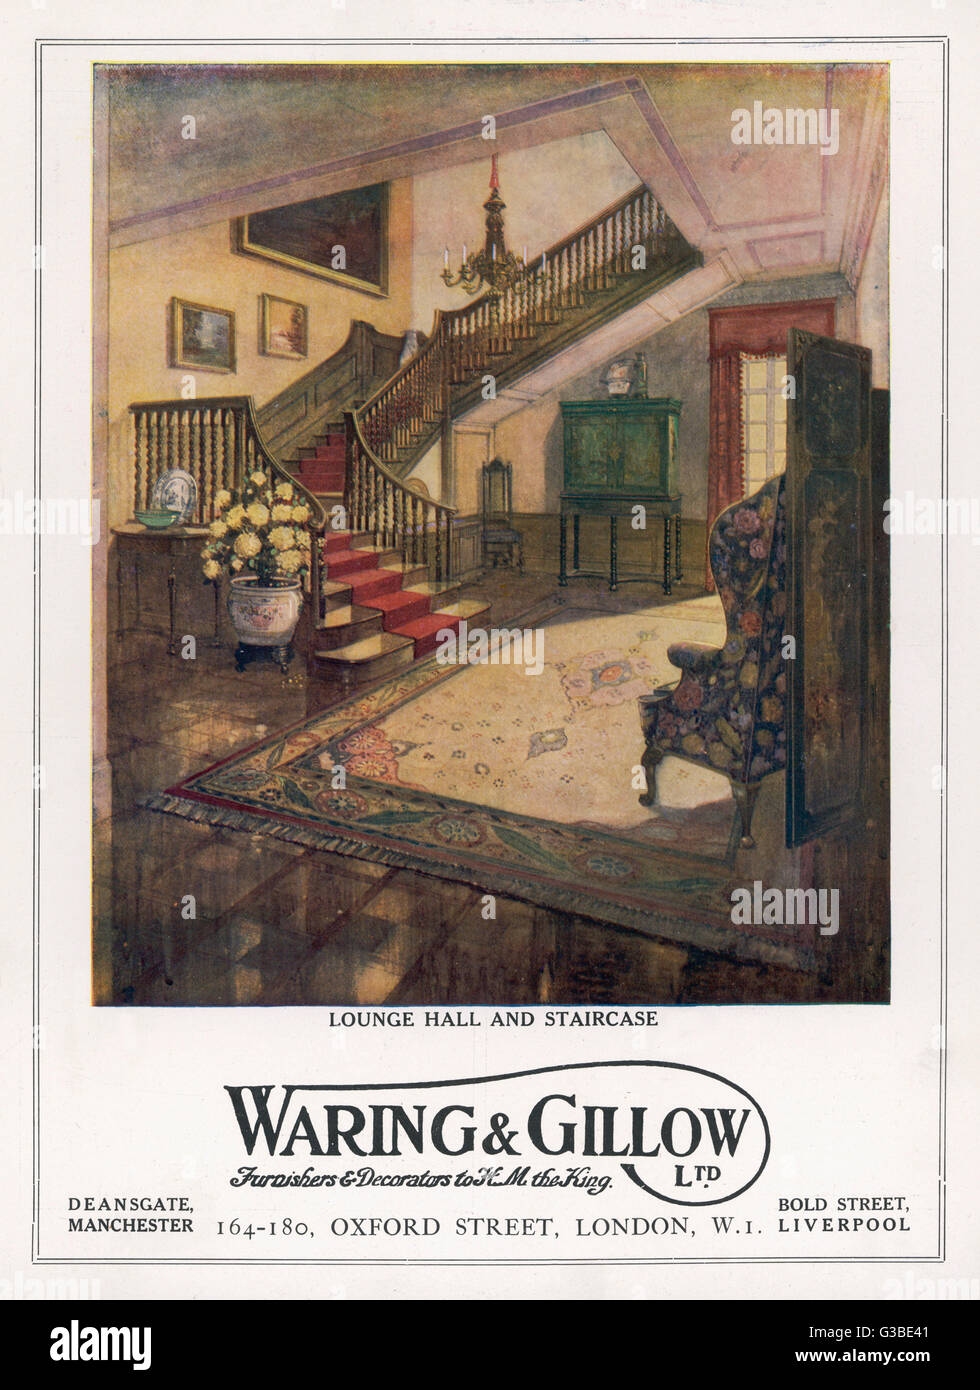 An improved hall and staircase  in an English townhouse  designed by Waring and Gillow.        Date: 1916 - Stock Image